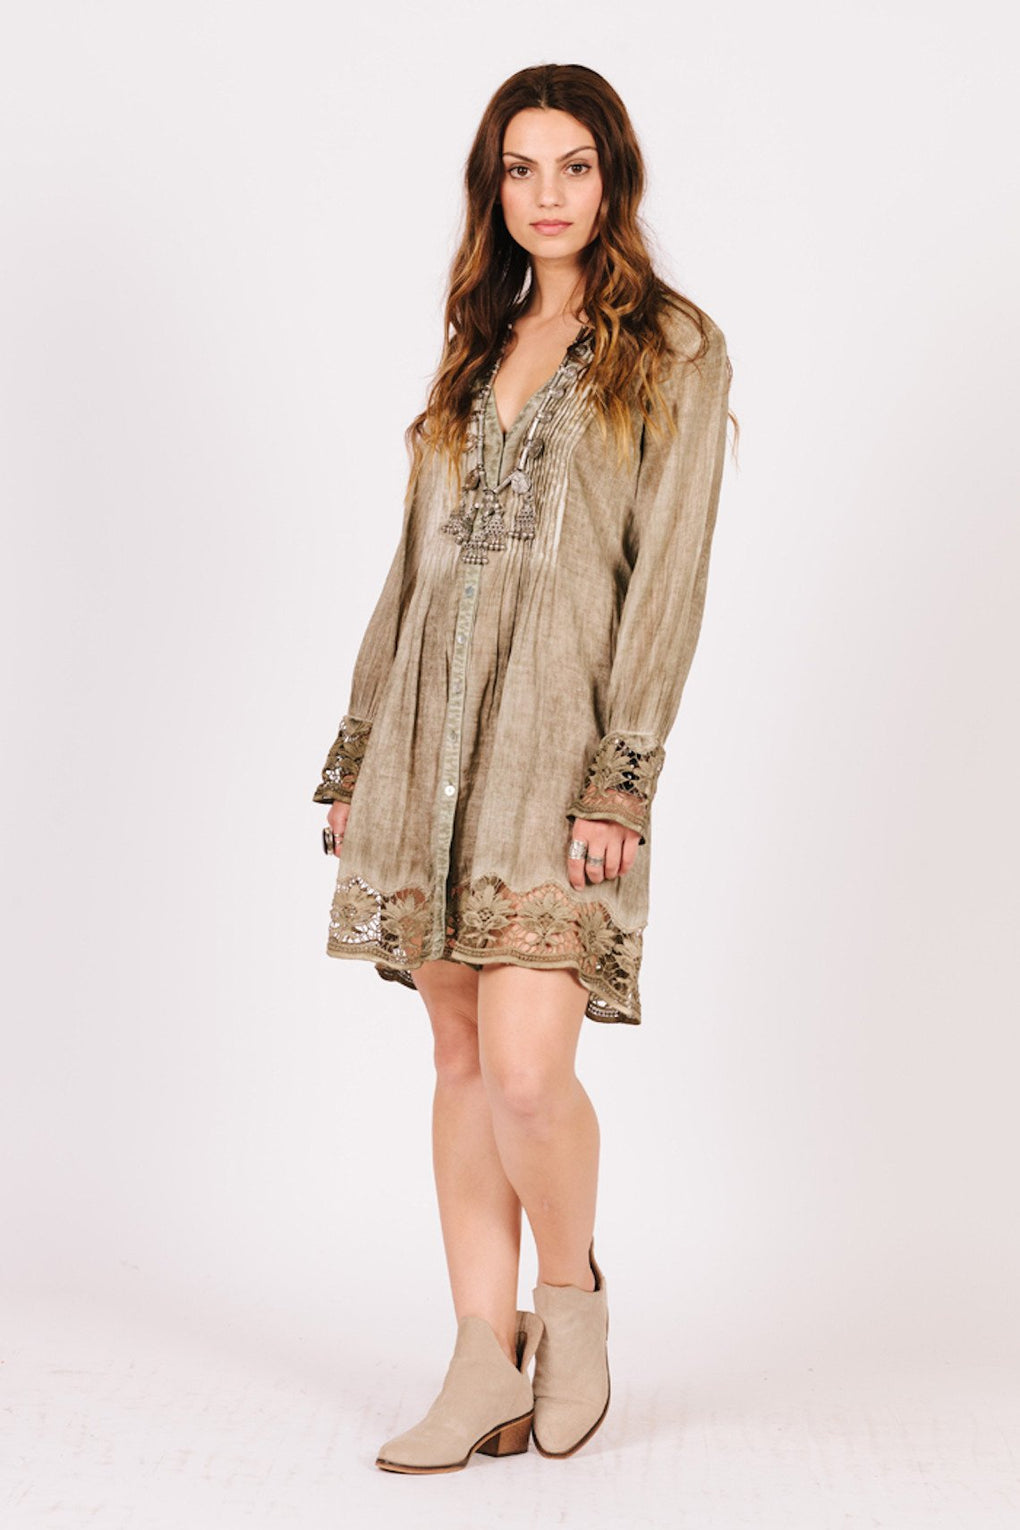 Forbidden Forest Tunic - Danish Fashion & Living Online Store SALE